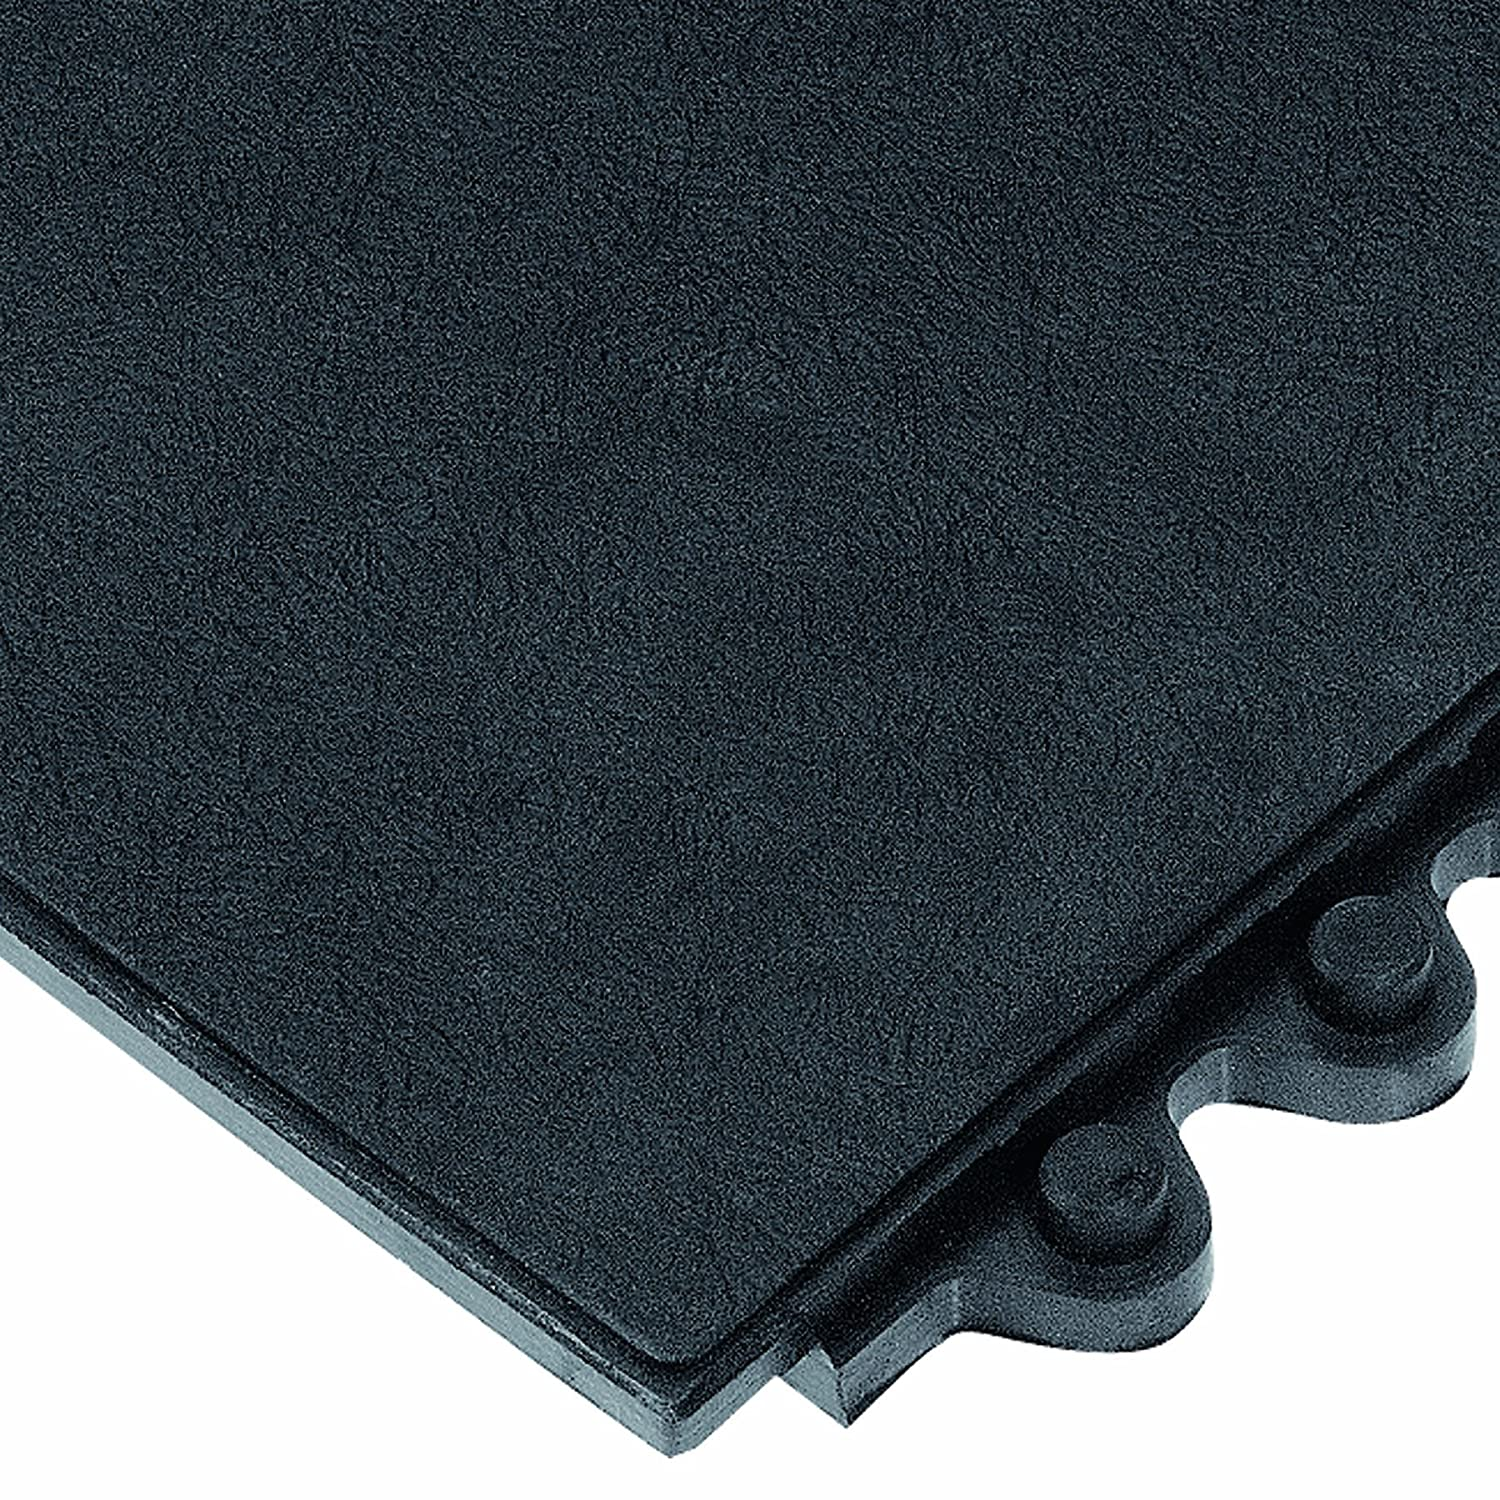 Wearwell Rubber 570 24/Seven Cutting Fluid Resistant Heavy Duty Anti-Fatigue Mat, for Wet Areas, 3' Width x 3' Length x 5/8 Thickness, Black by Wearwell Industrial B004E10SDA